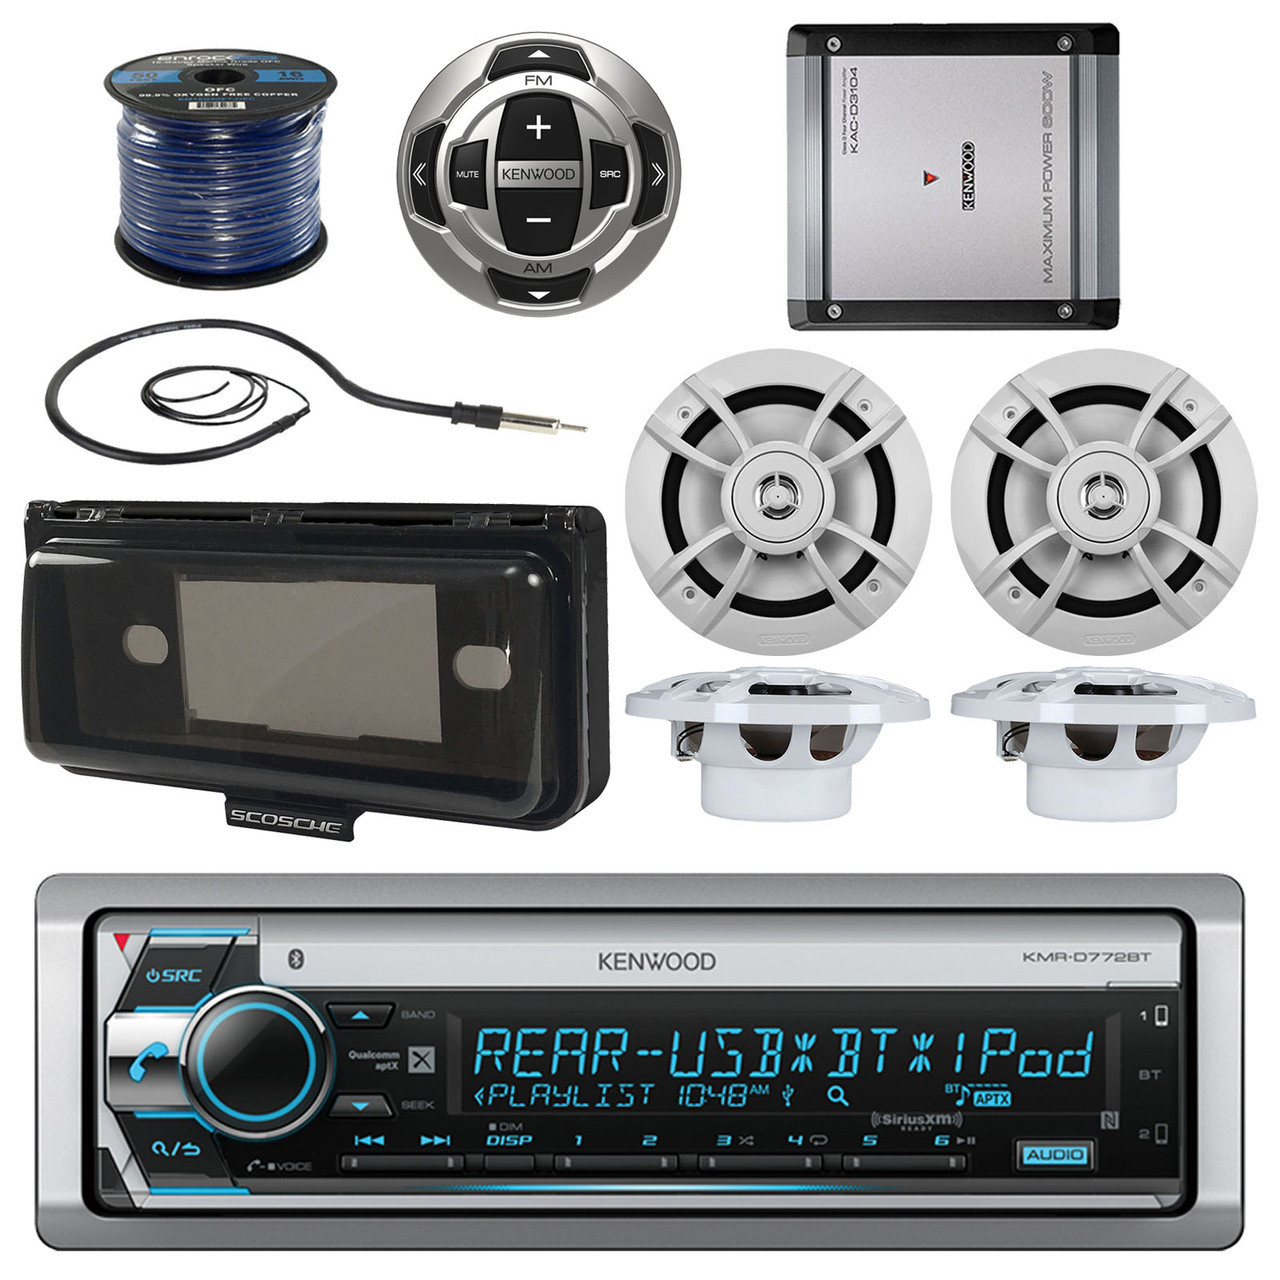 hight resolution of kenwood usb cd bluetooth boat radio remote 6 5 speakers wires amp antenna cover mbnpn498 road entertainment